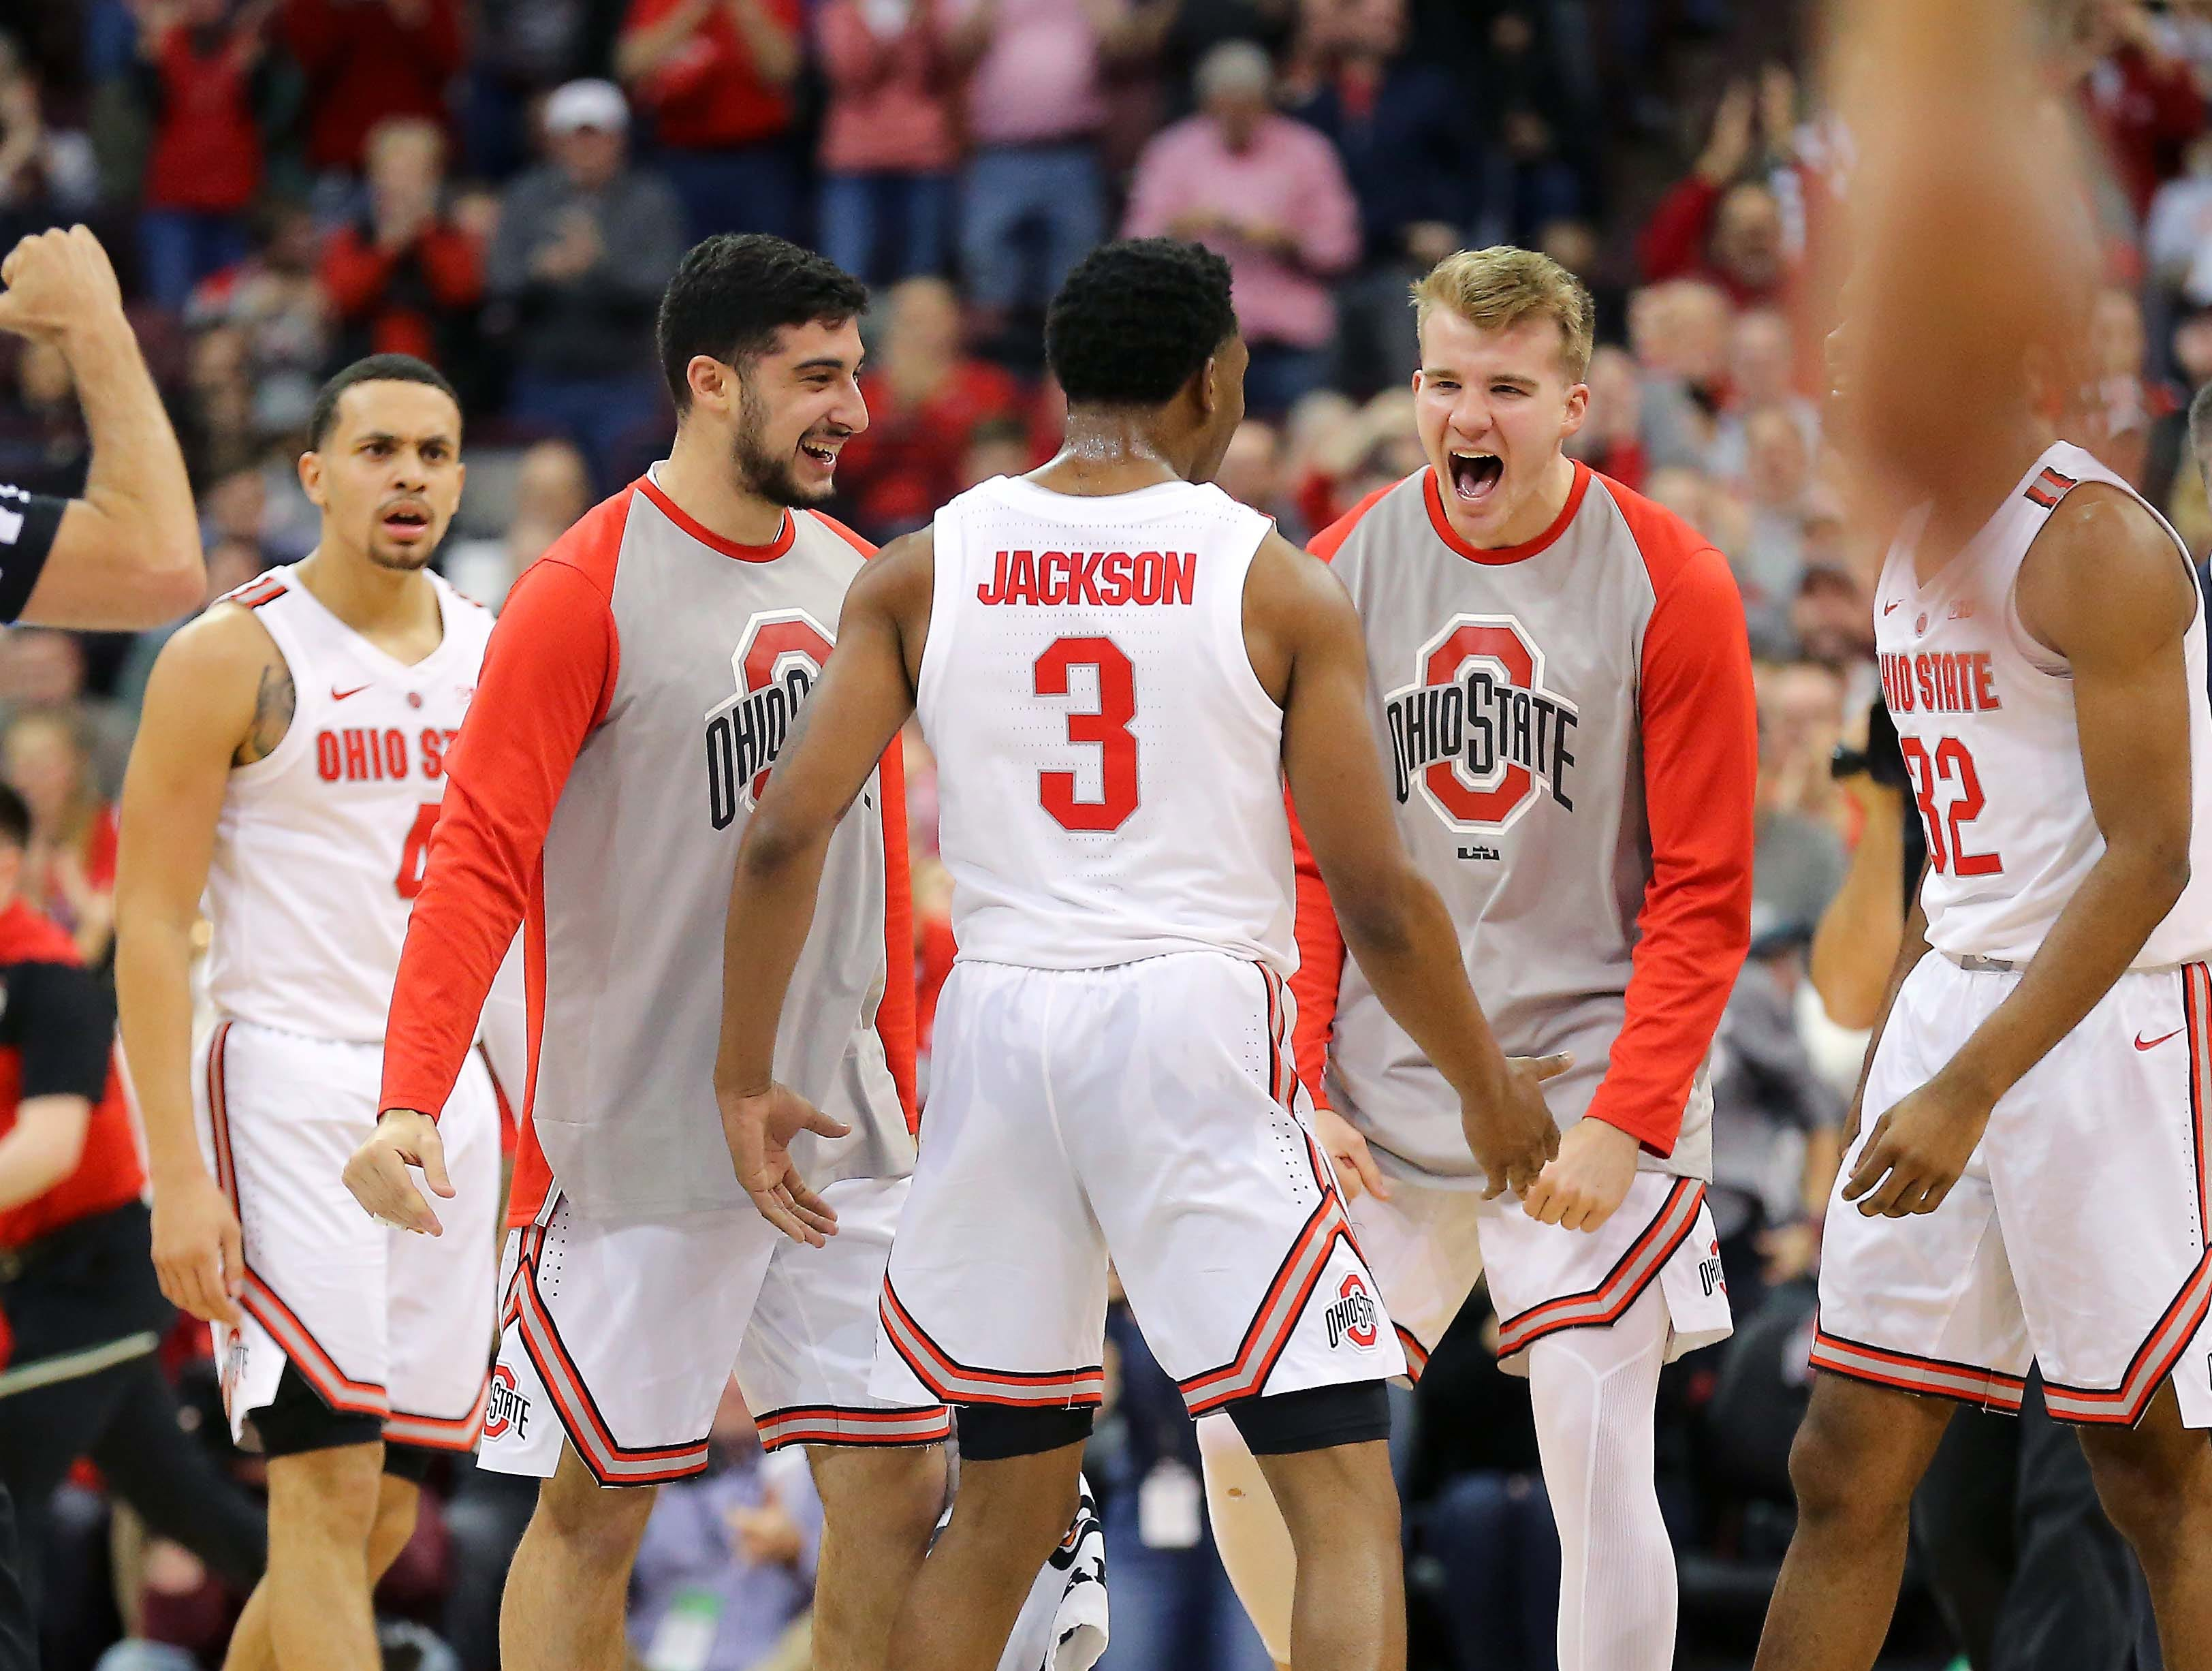 Jan 5, 2019; Columbus, OH, USA; Ohio State Buckeyes guard C.J. Jackson (3) celebrates as the Buckeyes take the first half lead against the Michigan State Spartans at Value City Arena. Mandatory Credit: Joe Maiorana-USA TODAY Sports